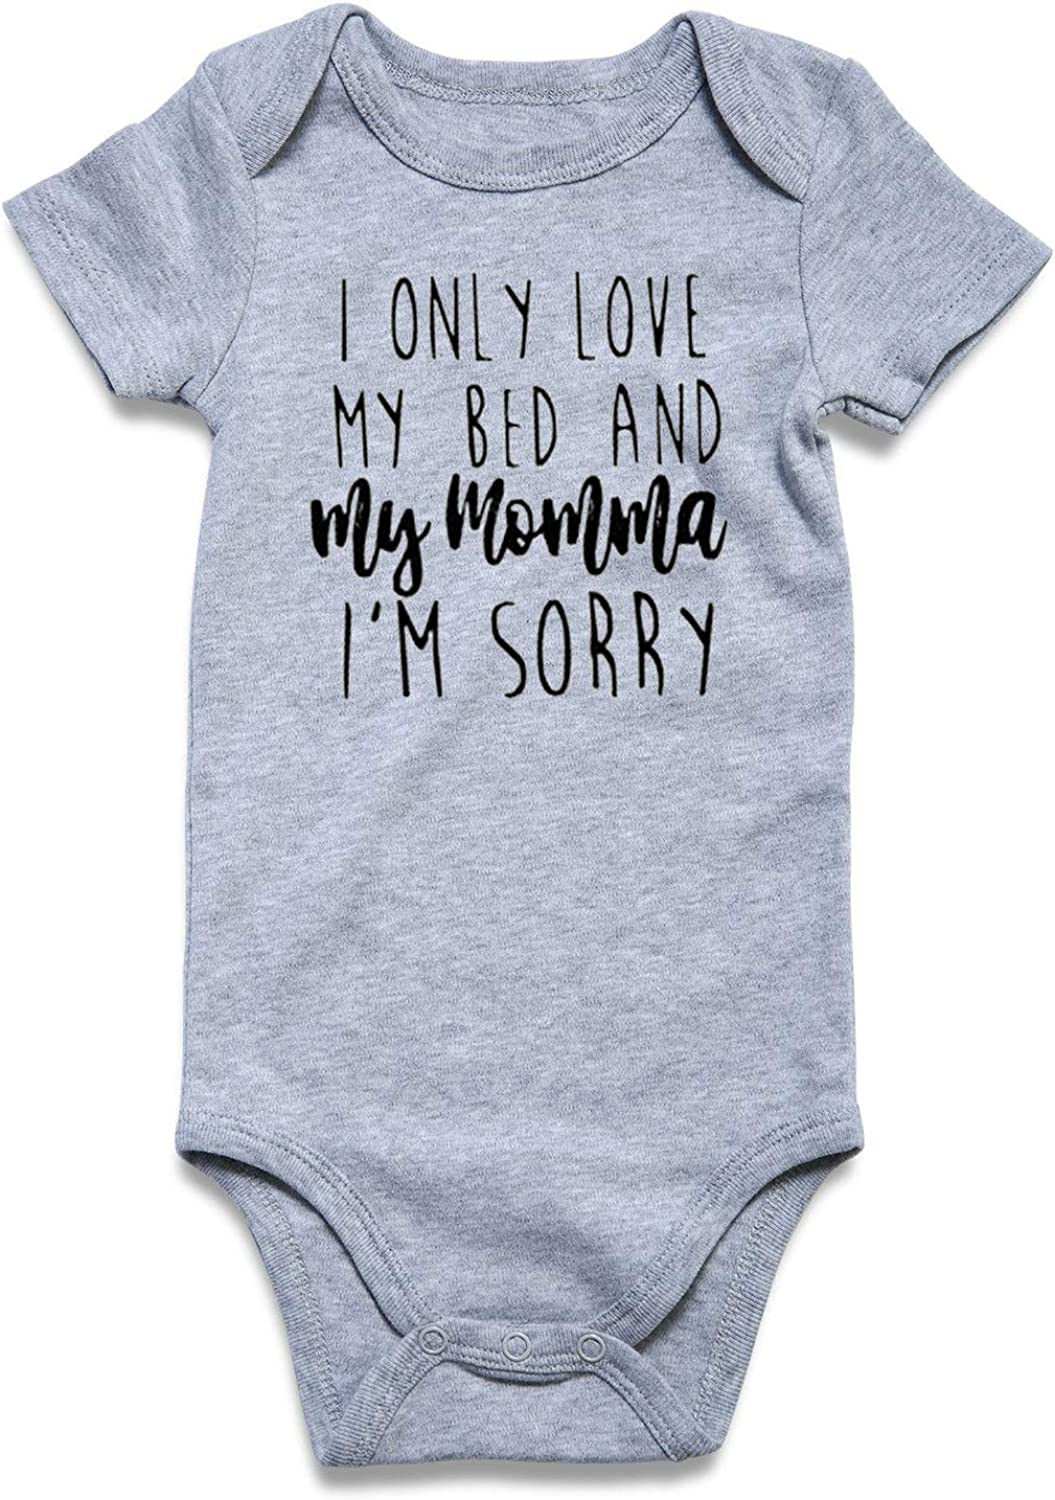 BFUSTYLE Baby Boys Girls Romper Infant Funny Bodysuit Outfit 0-18 Months